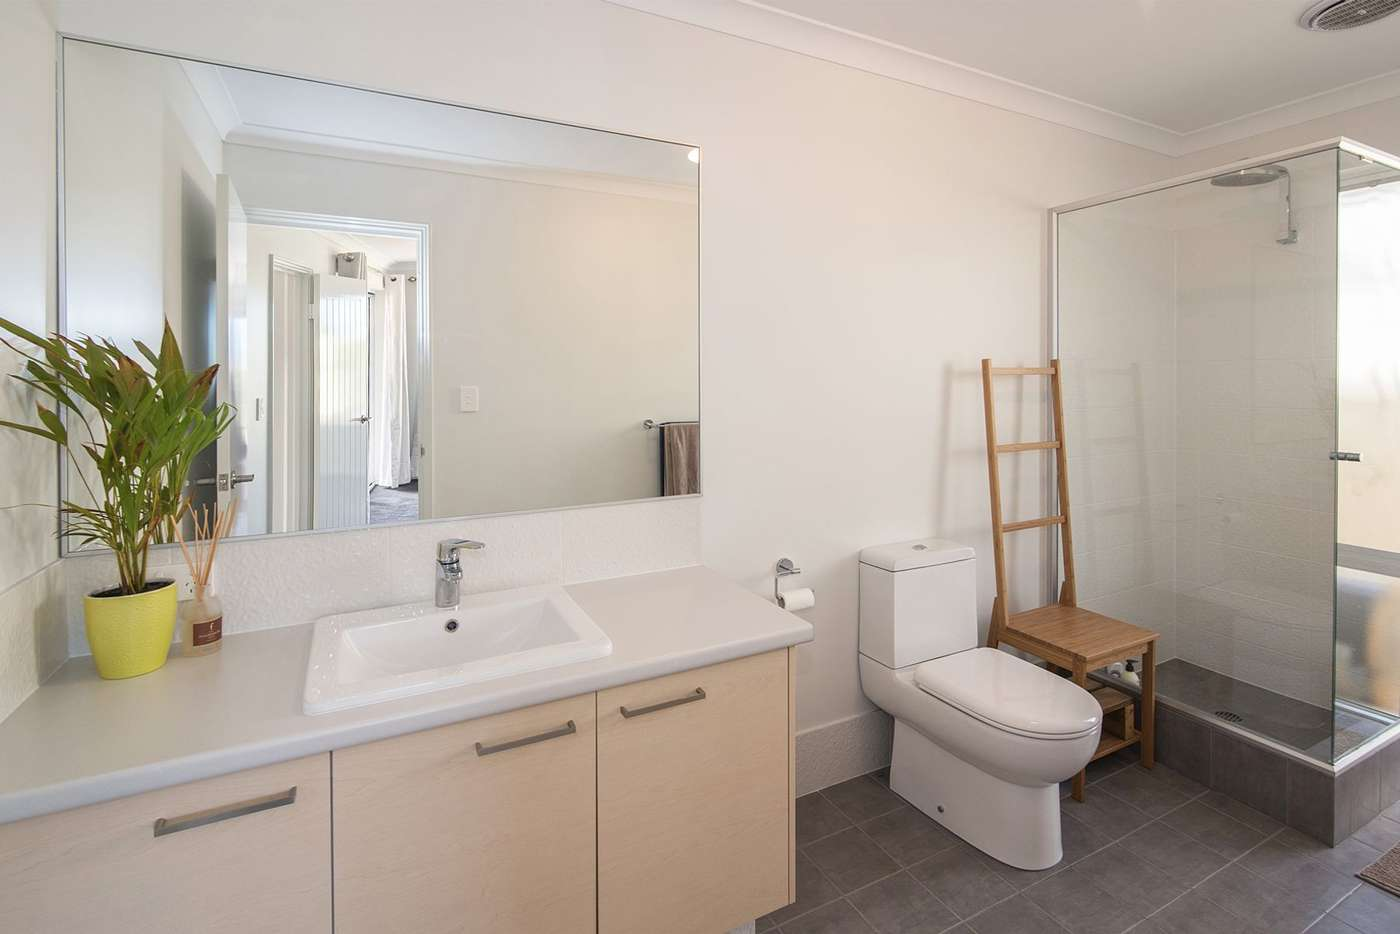 Seventh view of Homely house listing, 2 Pinehurst Crescent, Dunsborough WA 6281